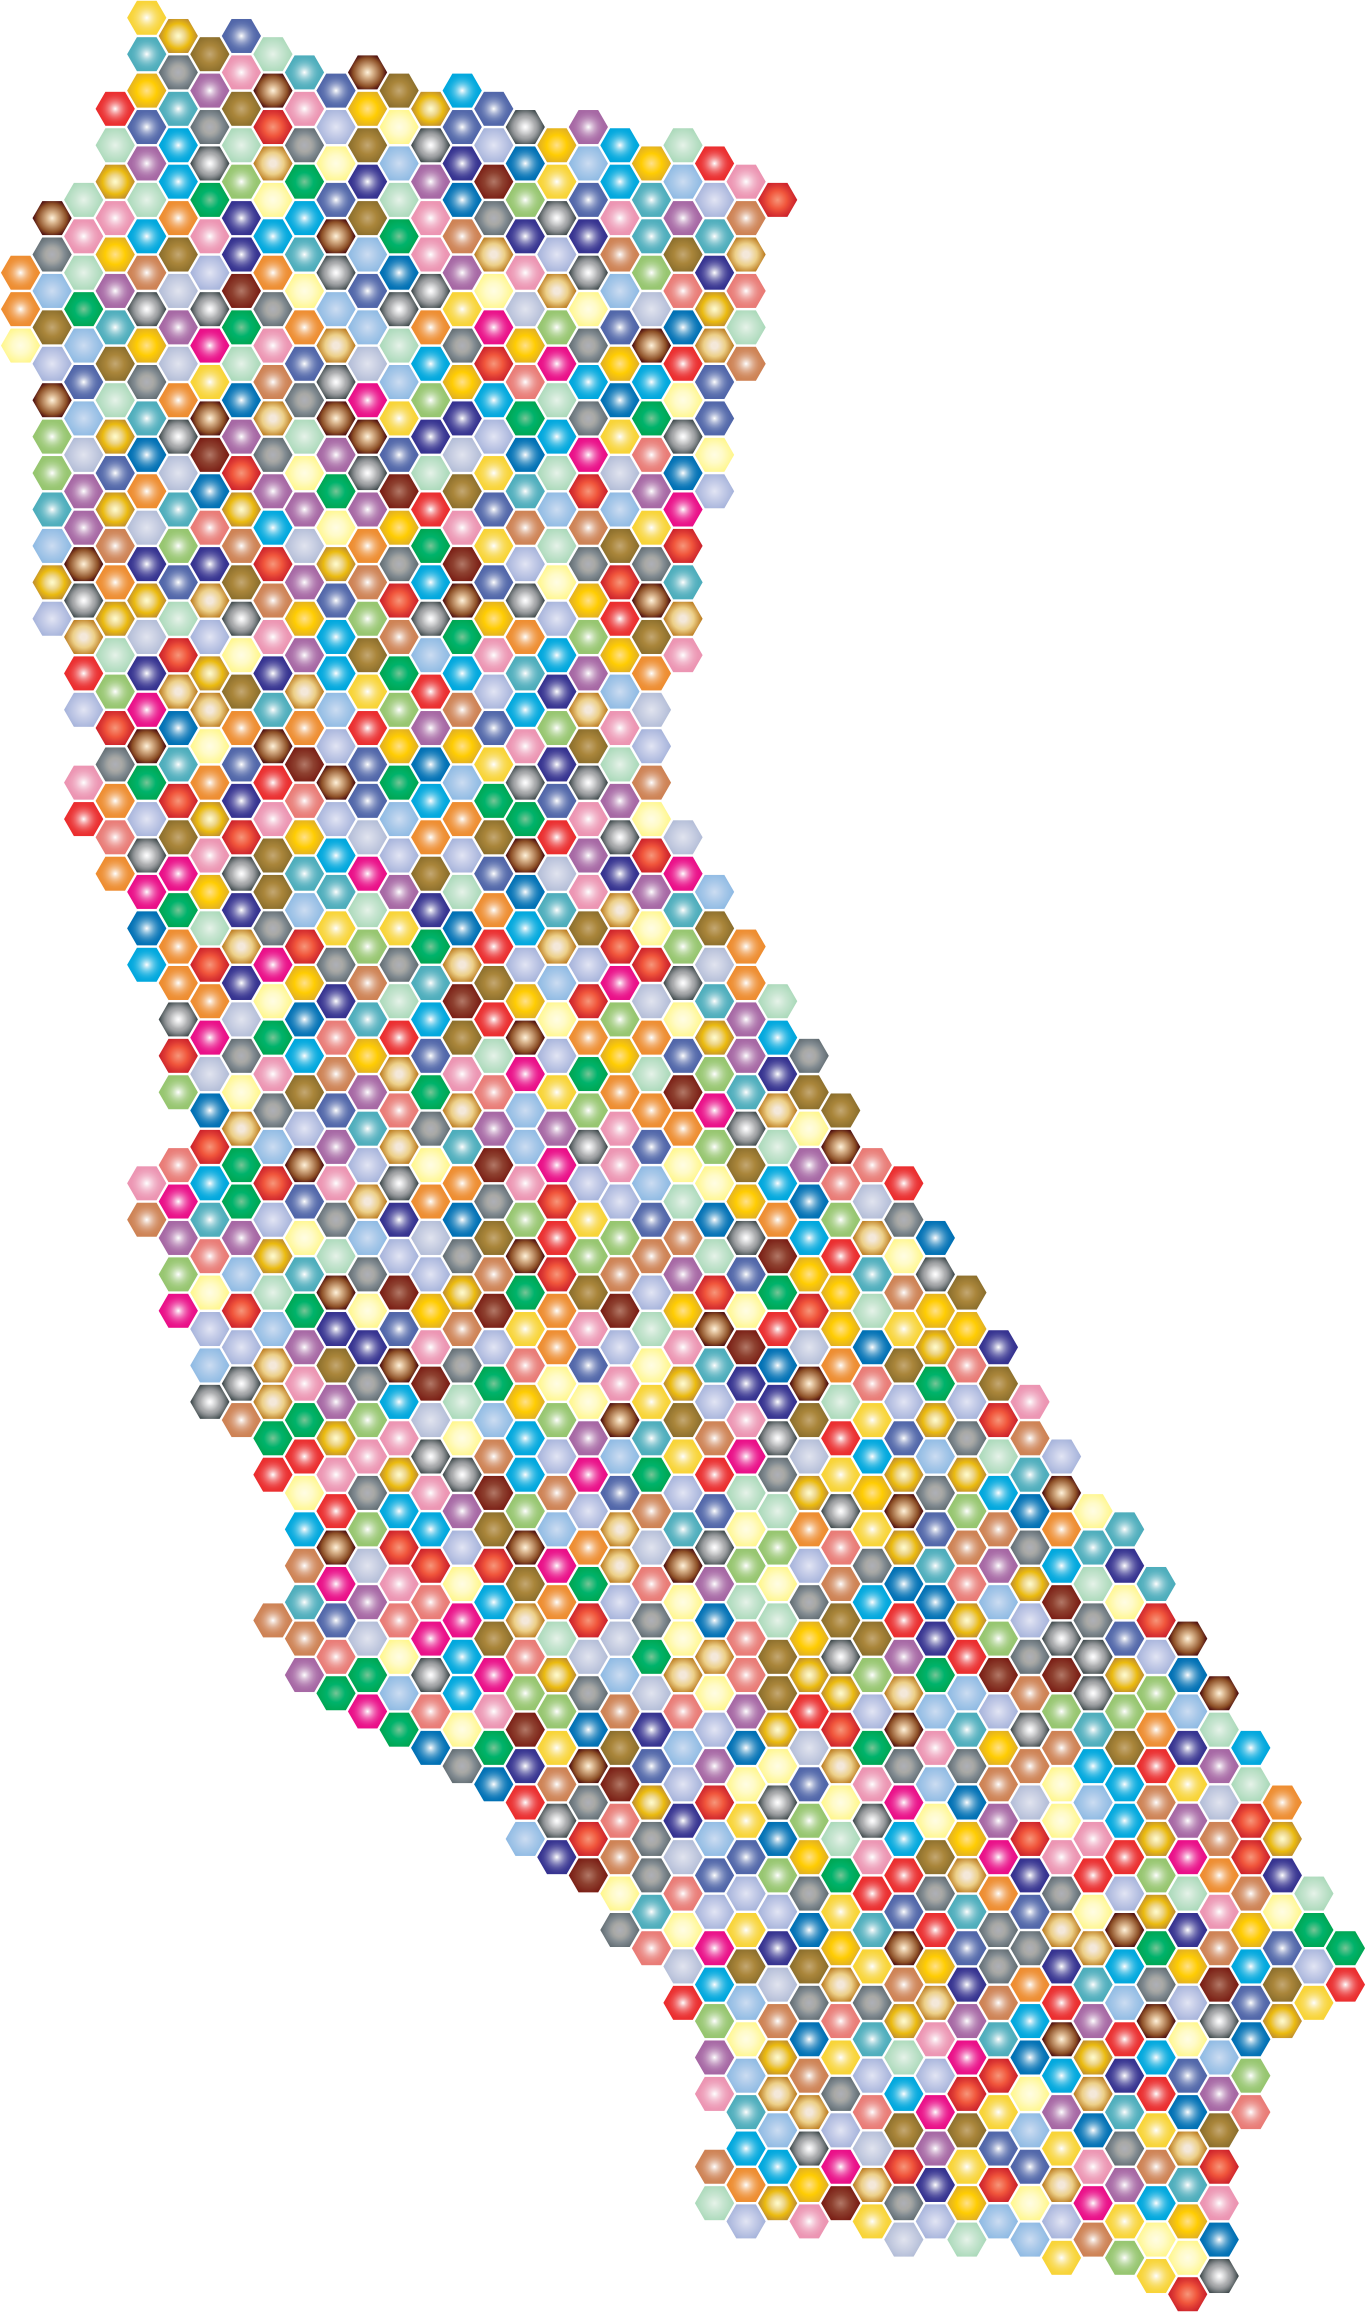 Prismatic California Hexagonal Mosaic 2 by GDJ